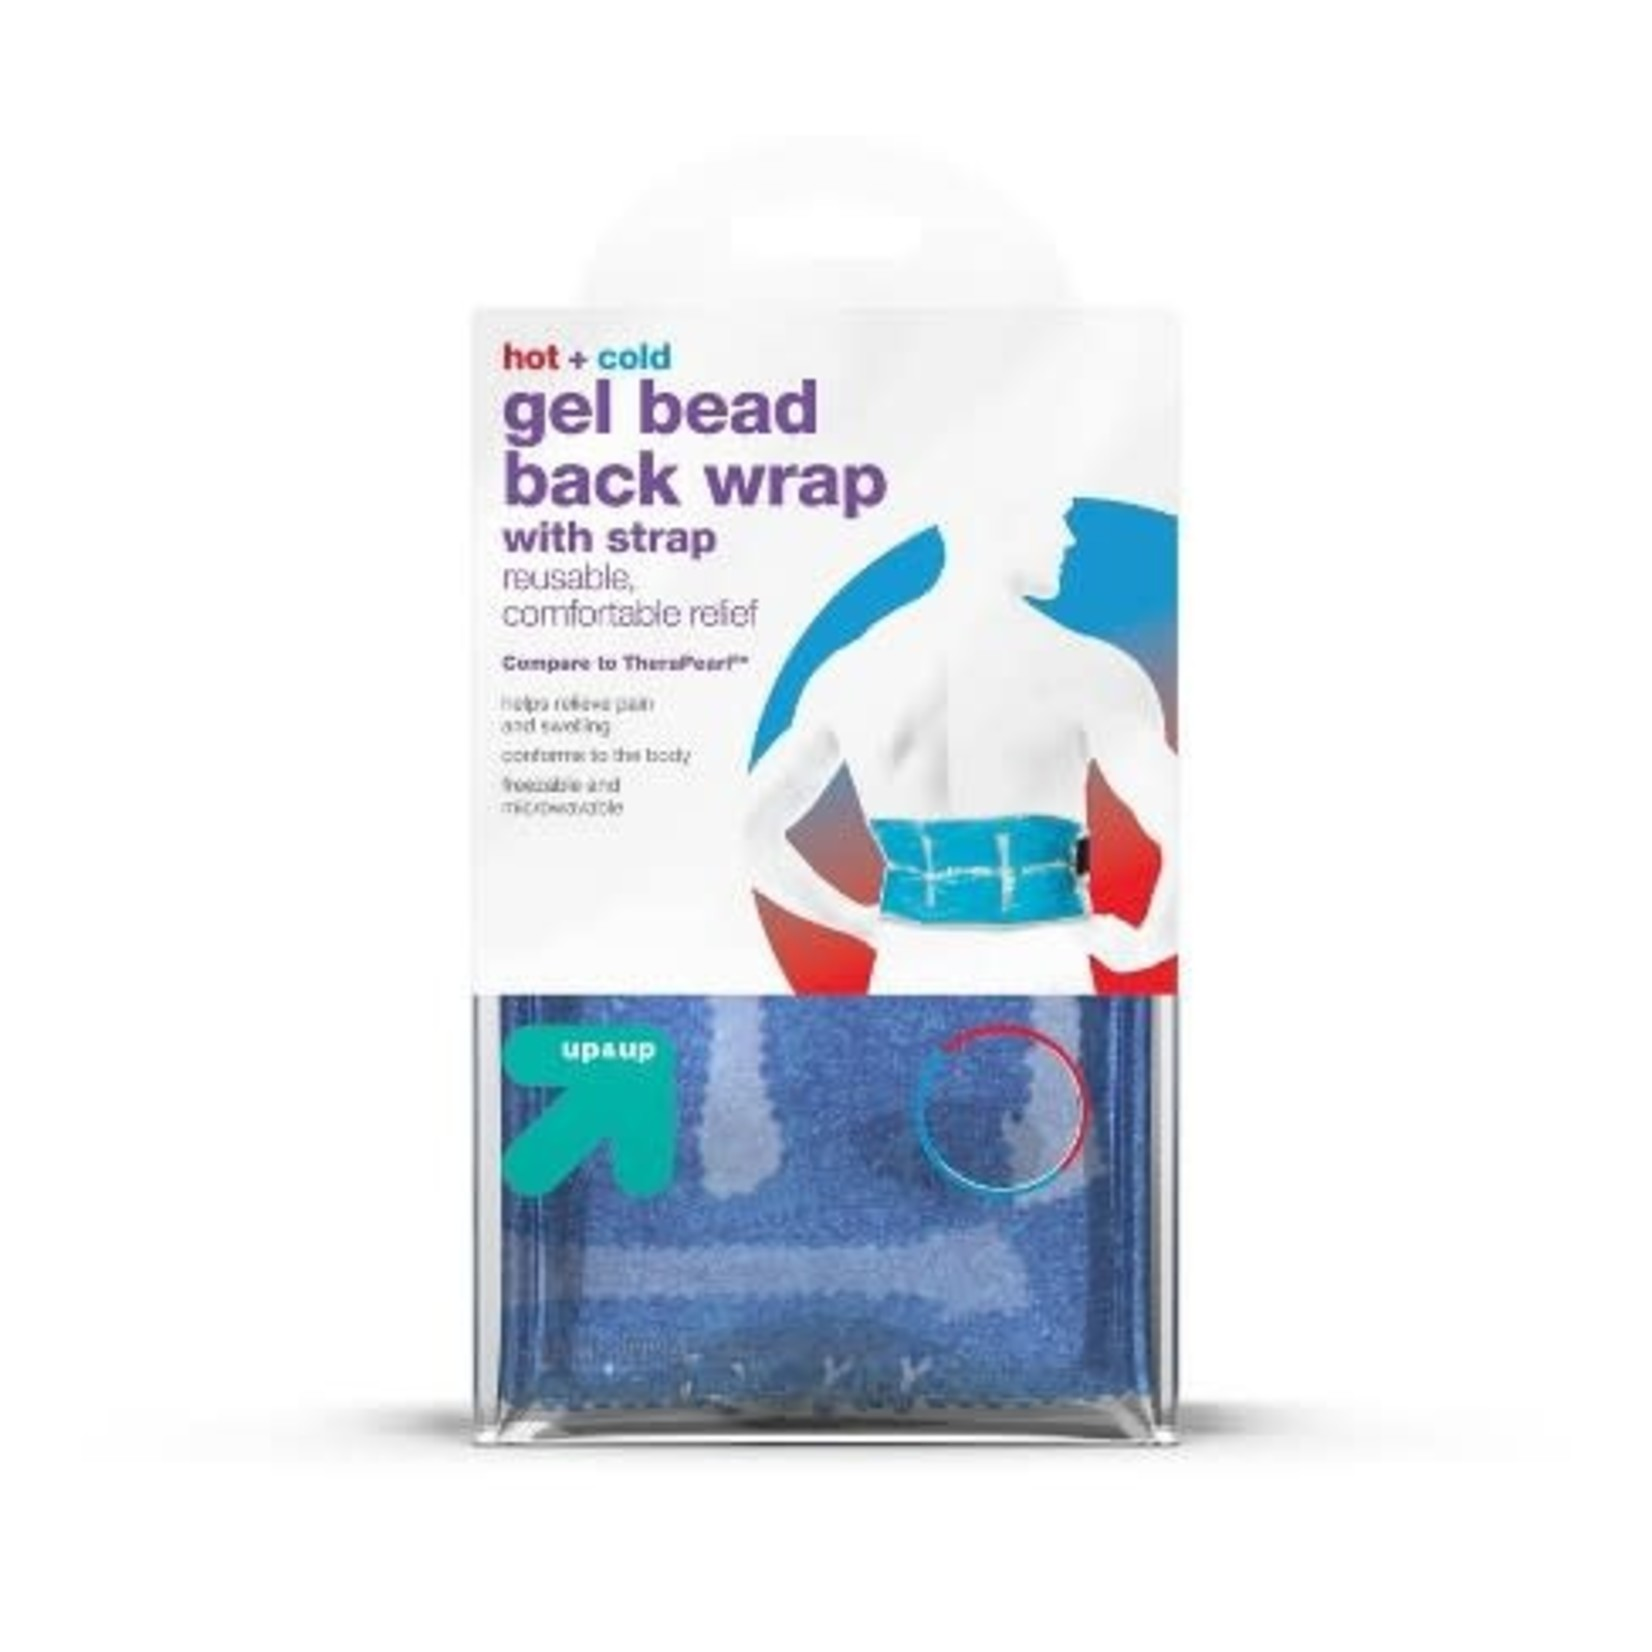 Hot+Cold Gel Bead Back Wrap with Strap